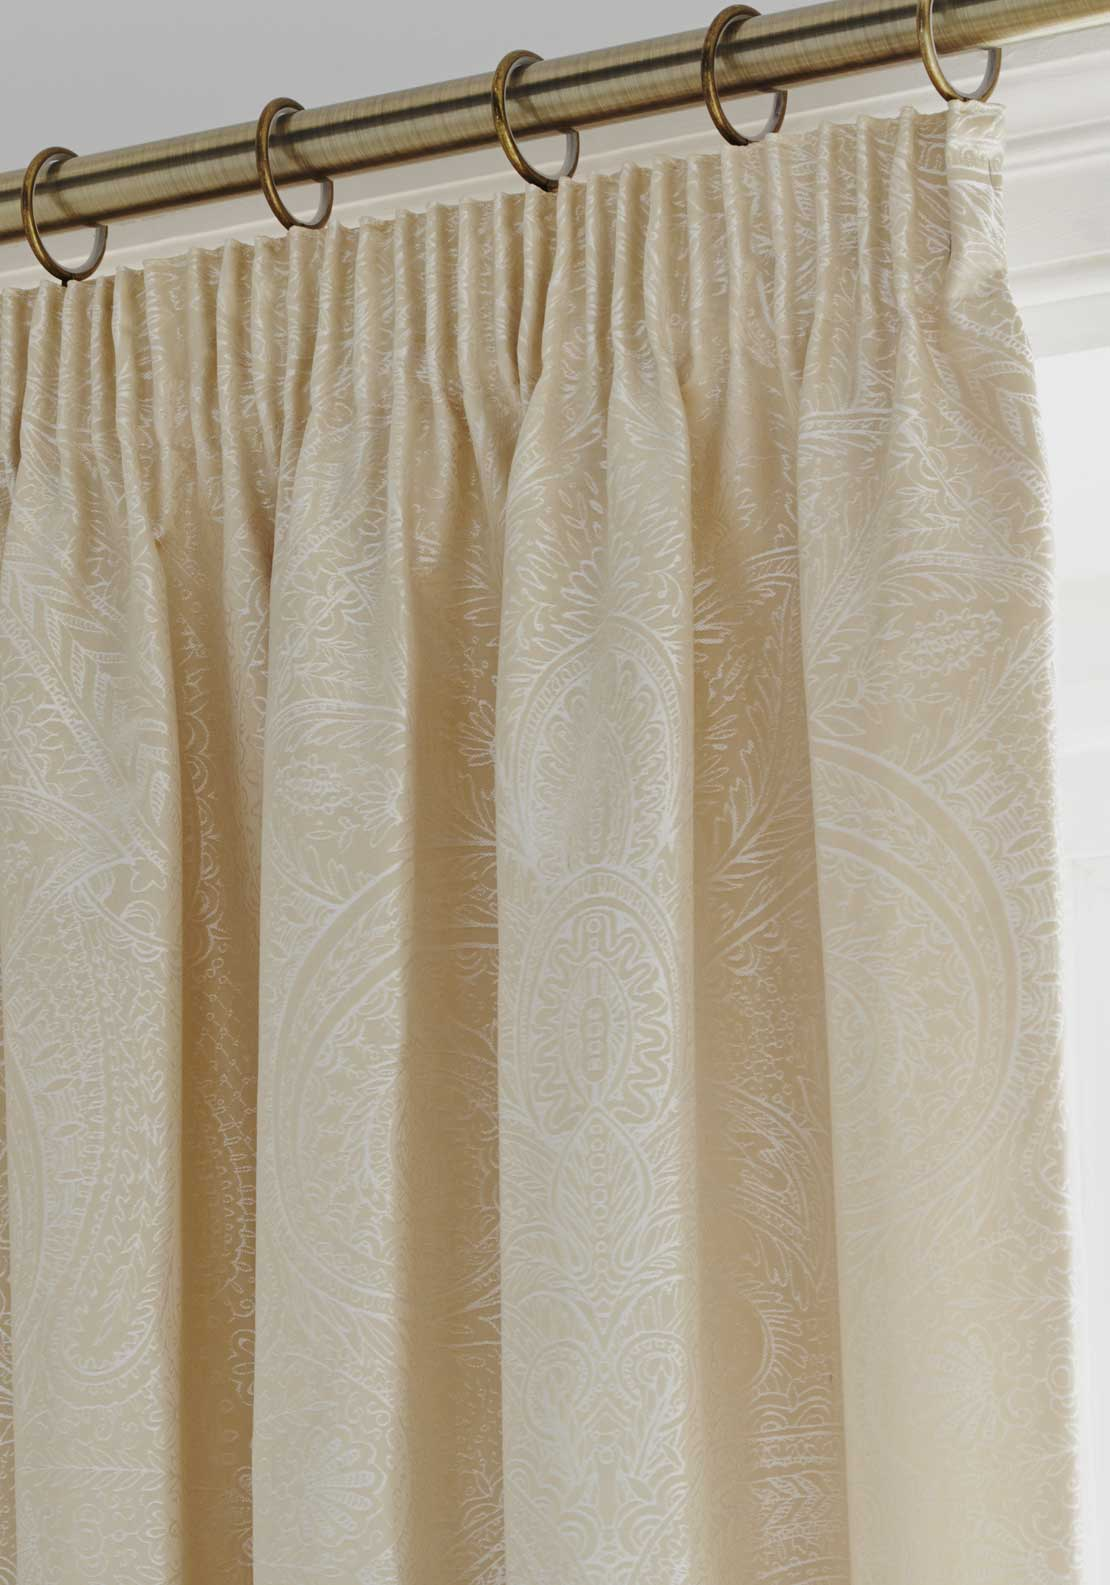 Country Classics Linden Luxury Woven Jacquard One Pair Pencil Pleat Lined Curtains 66x72, Gold